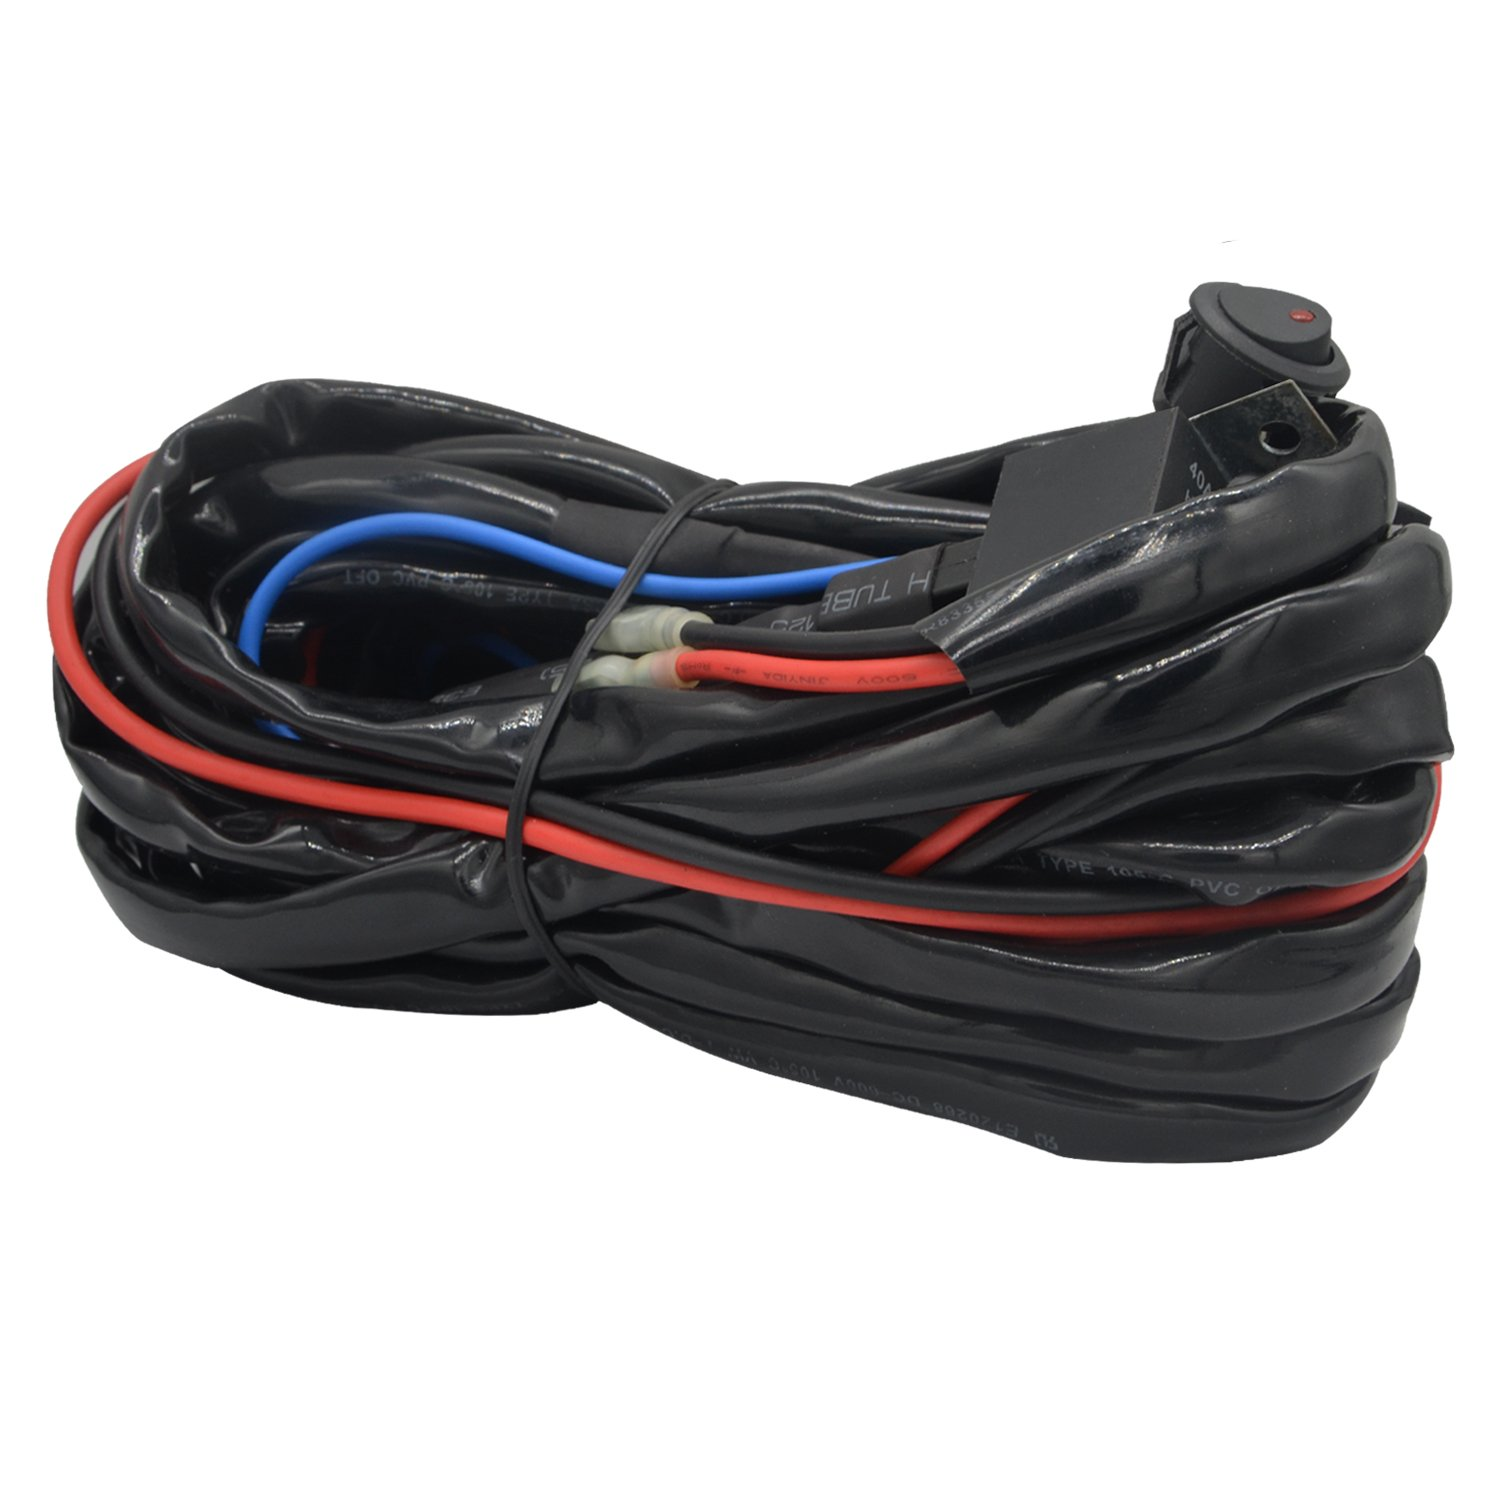 71hdbgsGjCL._SL1500_ amazon com wiring harnesses electrical automotive ksc-wa100 wiring harness at couponss.co